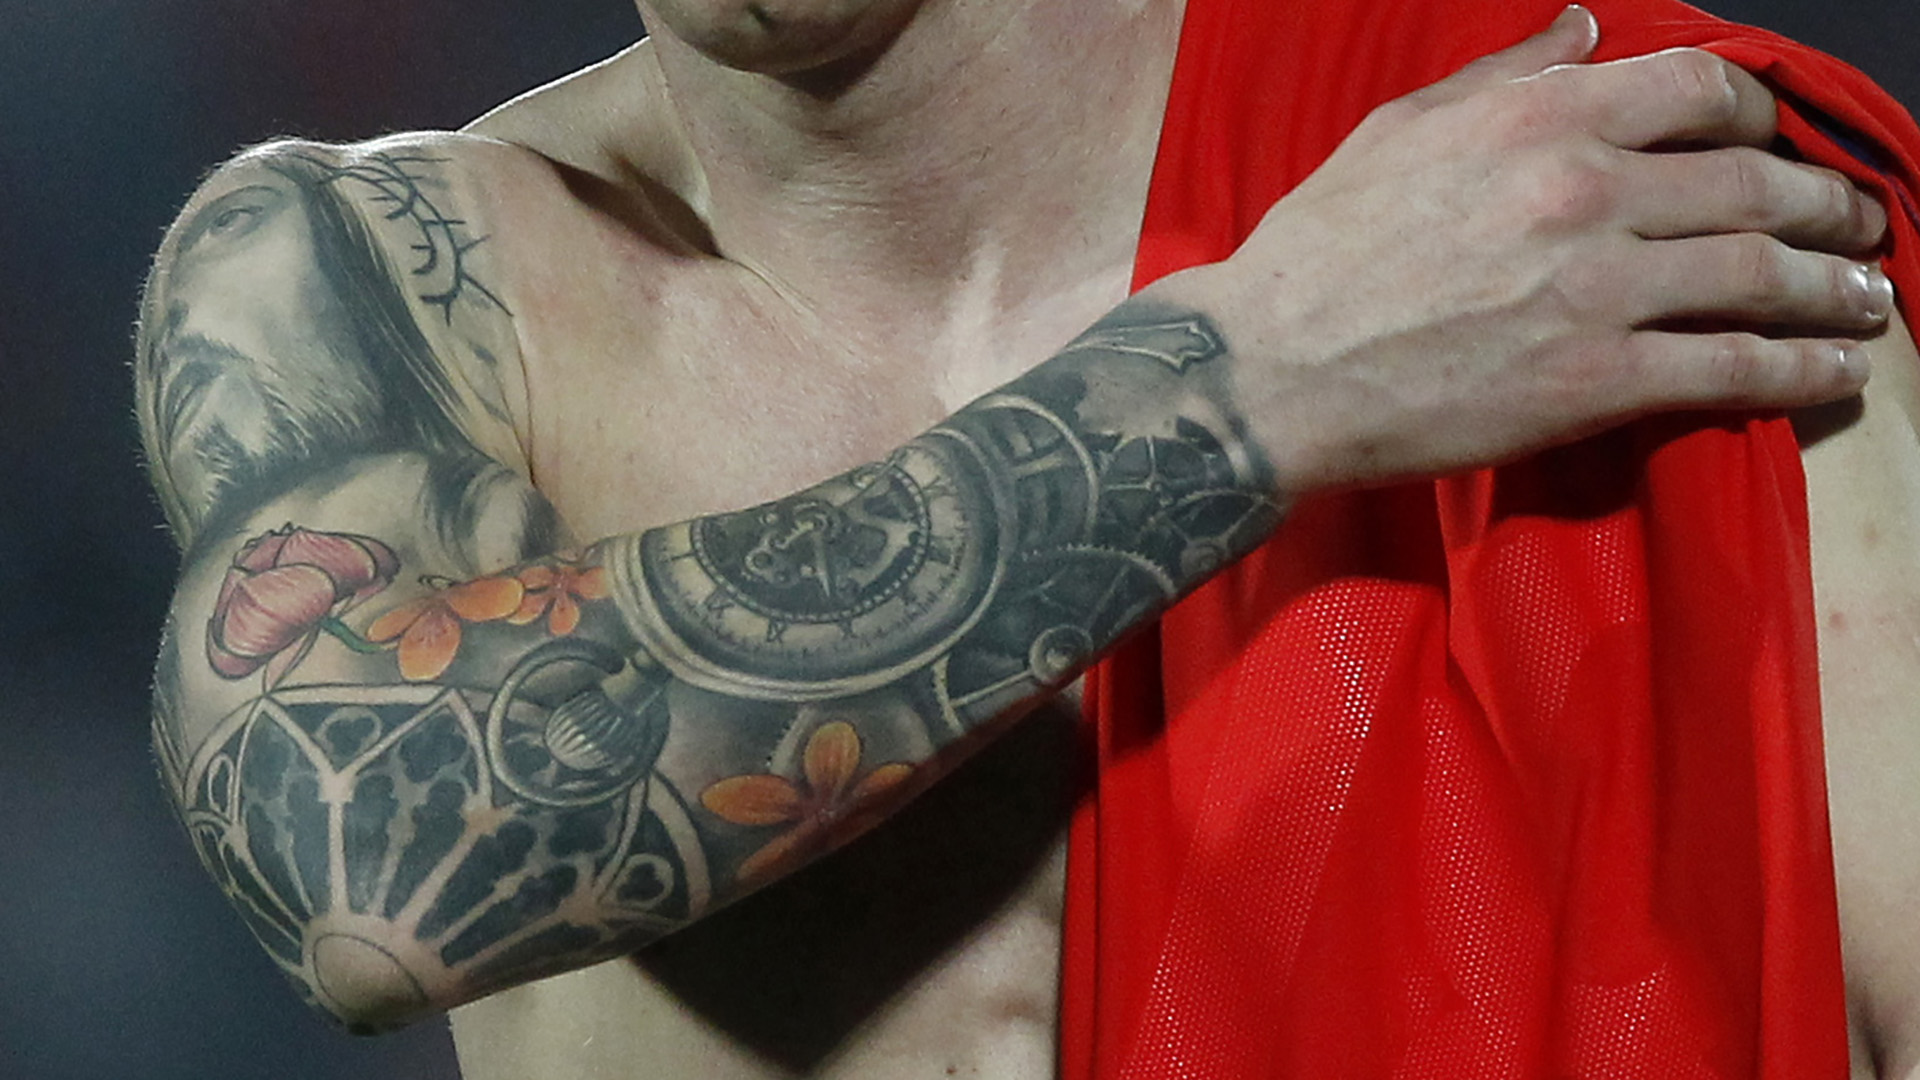 Lionel Messi's tattoos explained: What do they mean & whereabouts on his body are they?